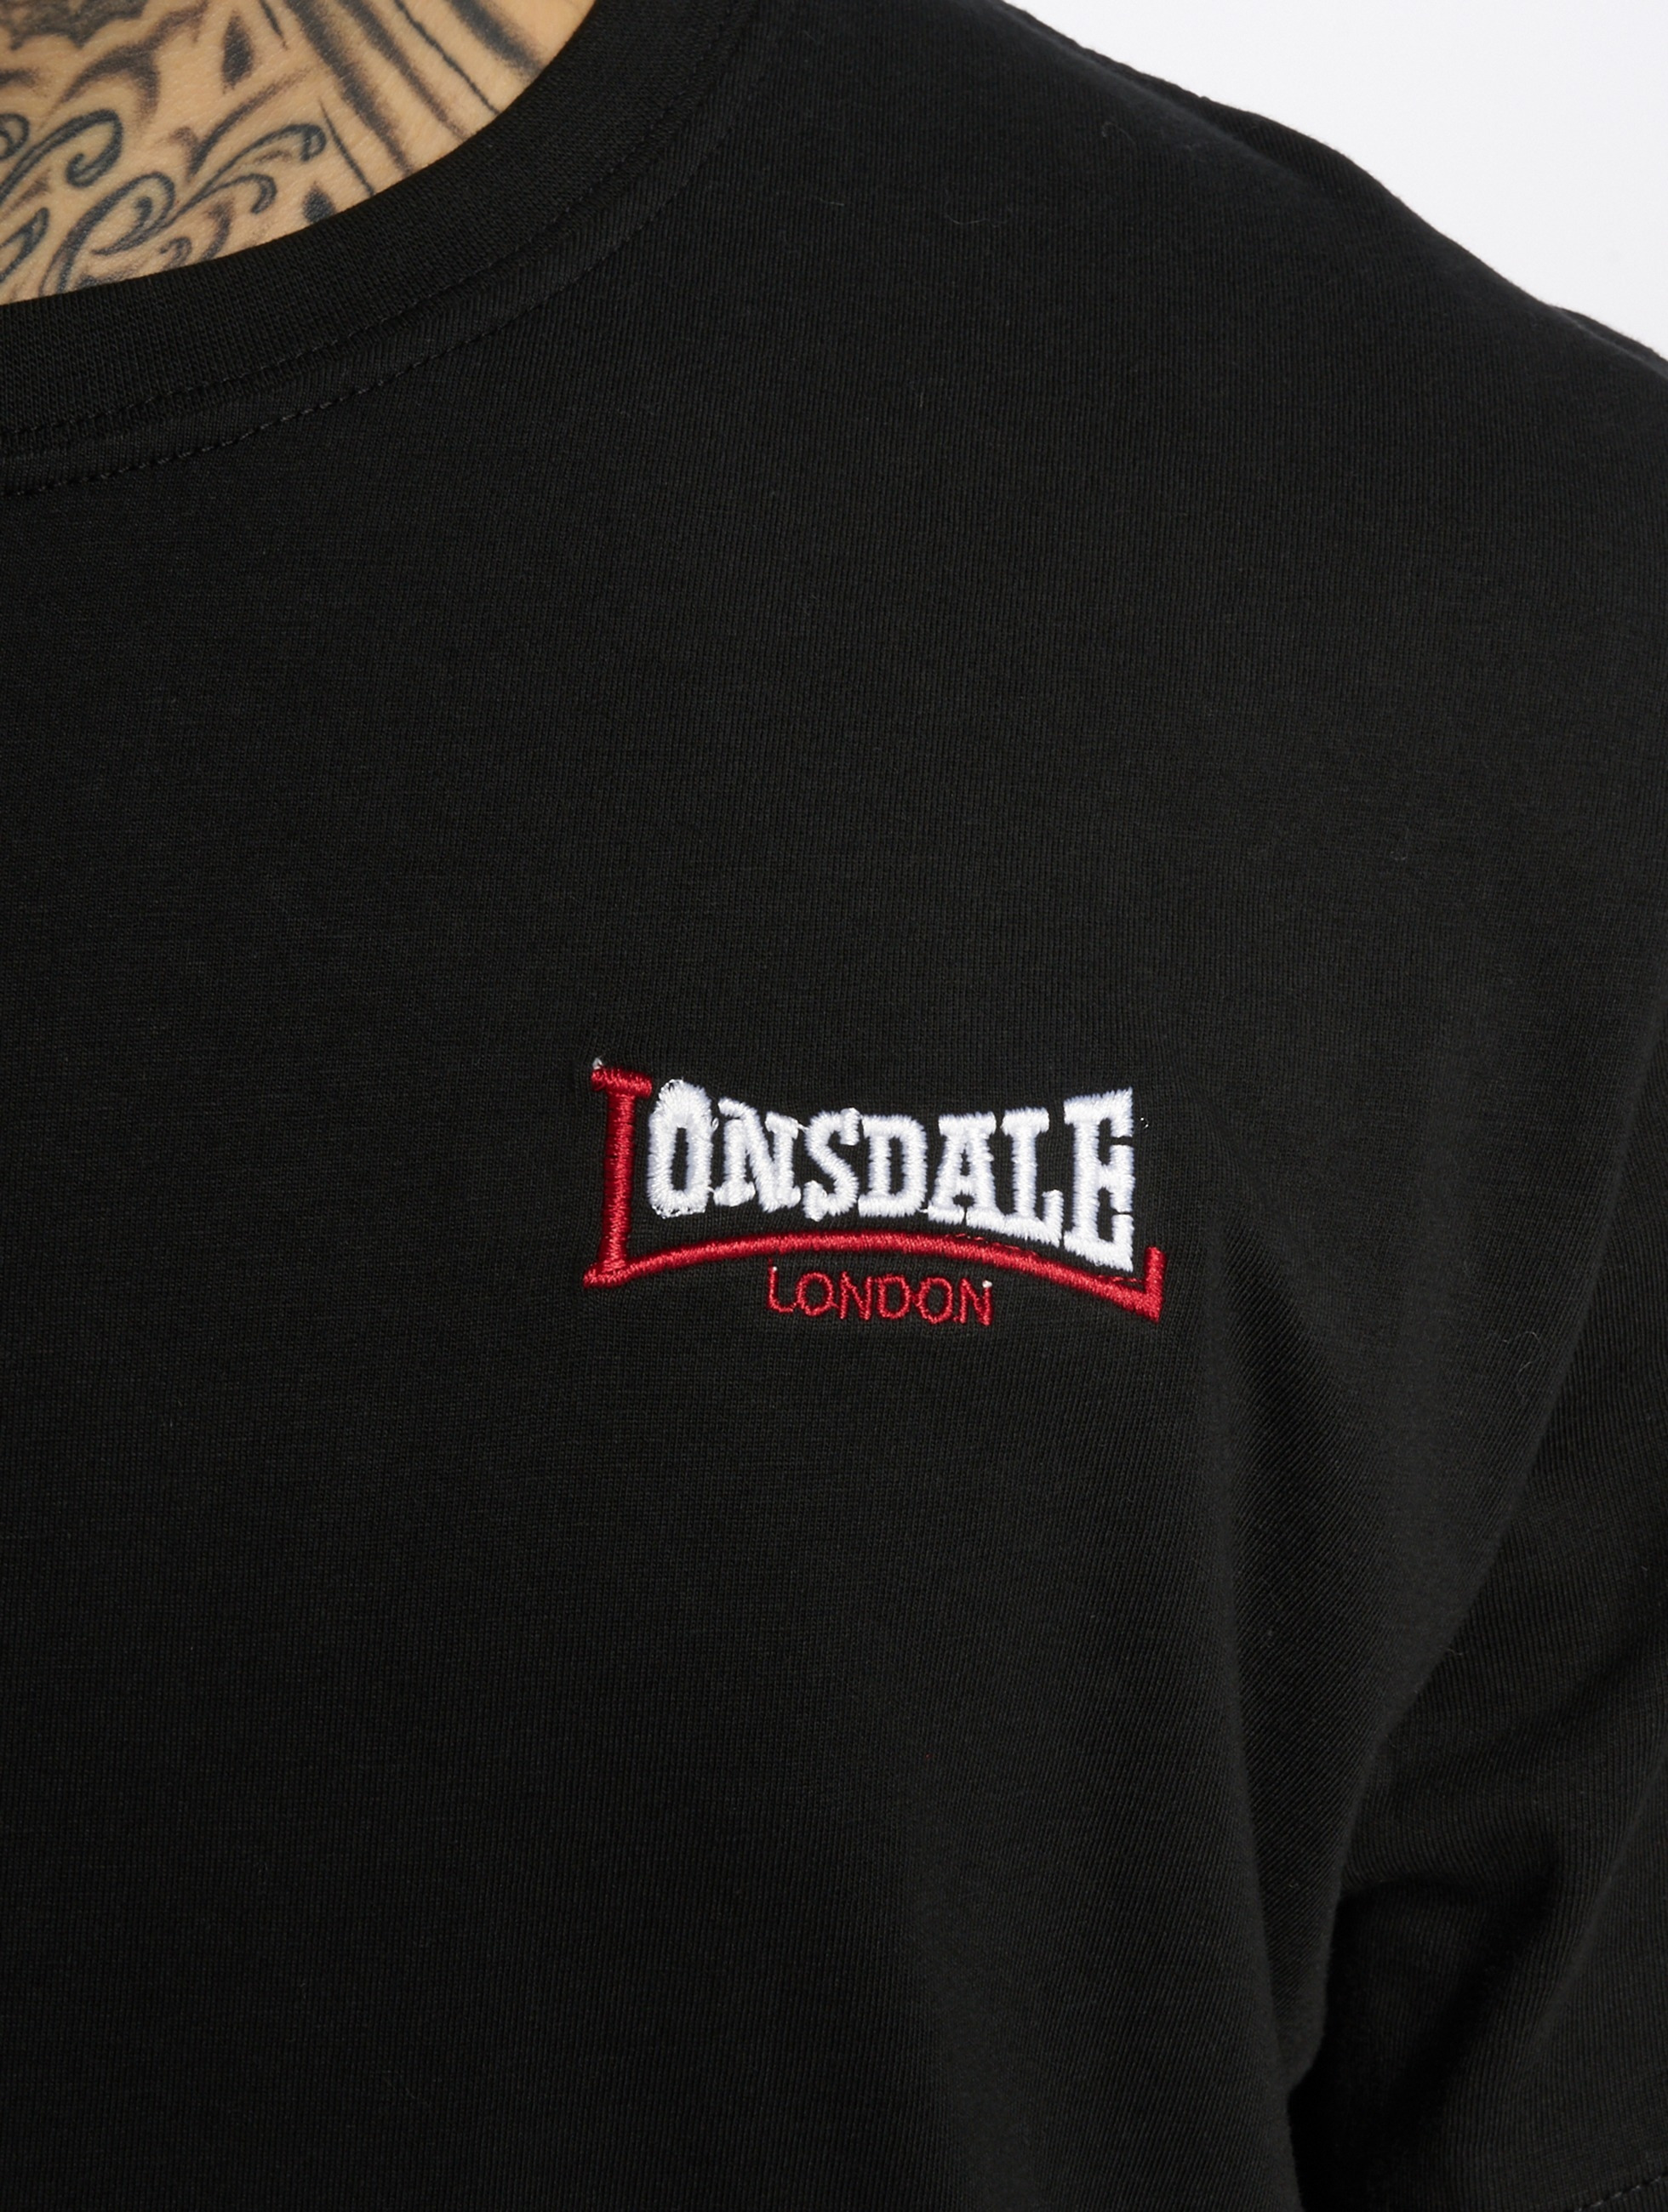 Lonsdale London T-paidat Teeton musta